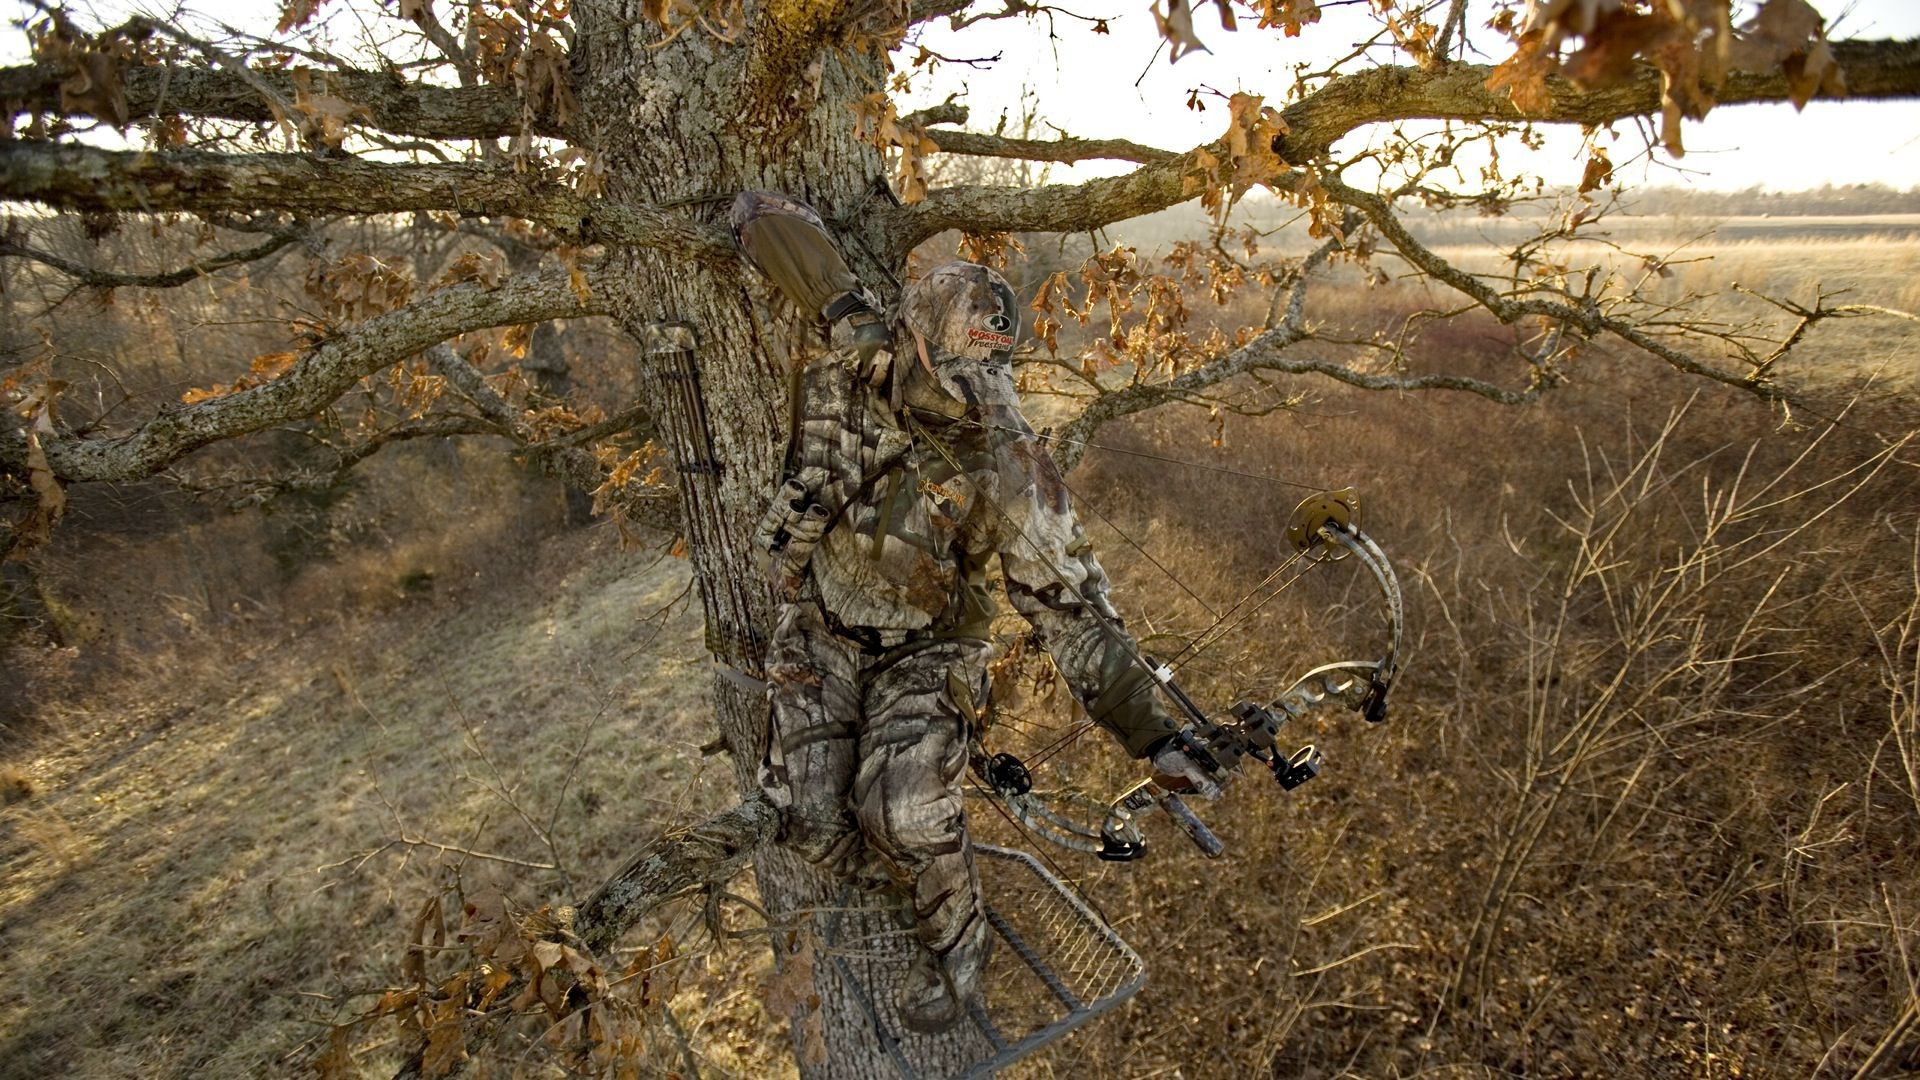 Realtree Wallpaper ① Download Free Stunning Hd Backgrounds For